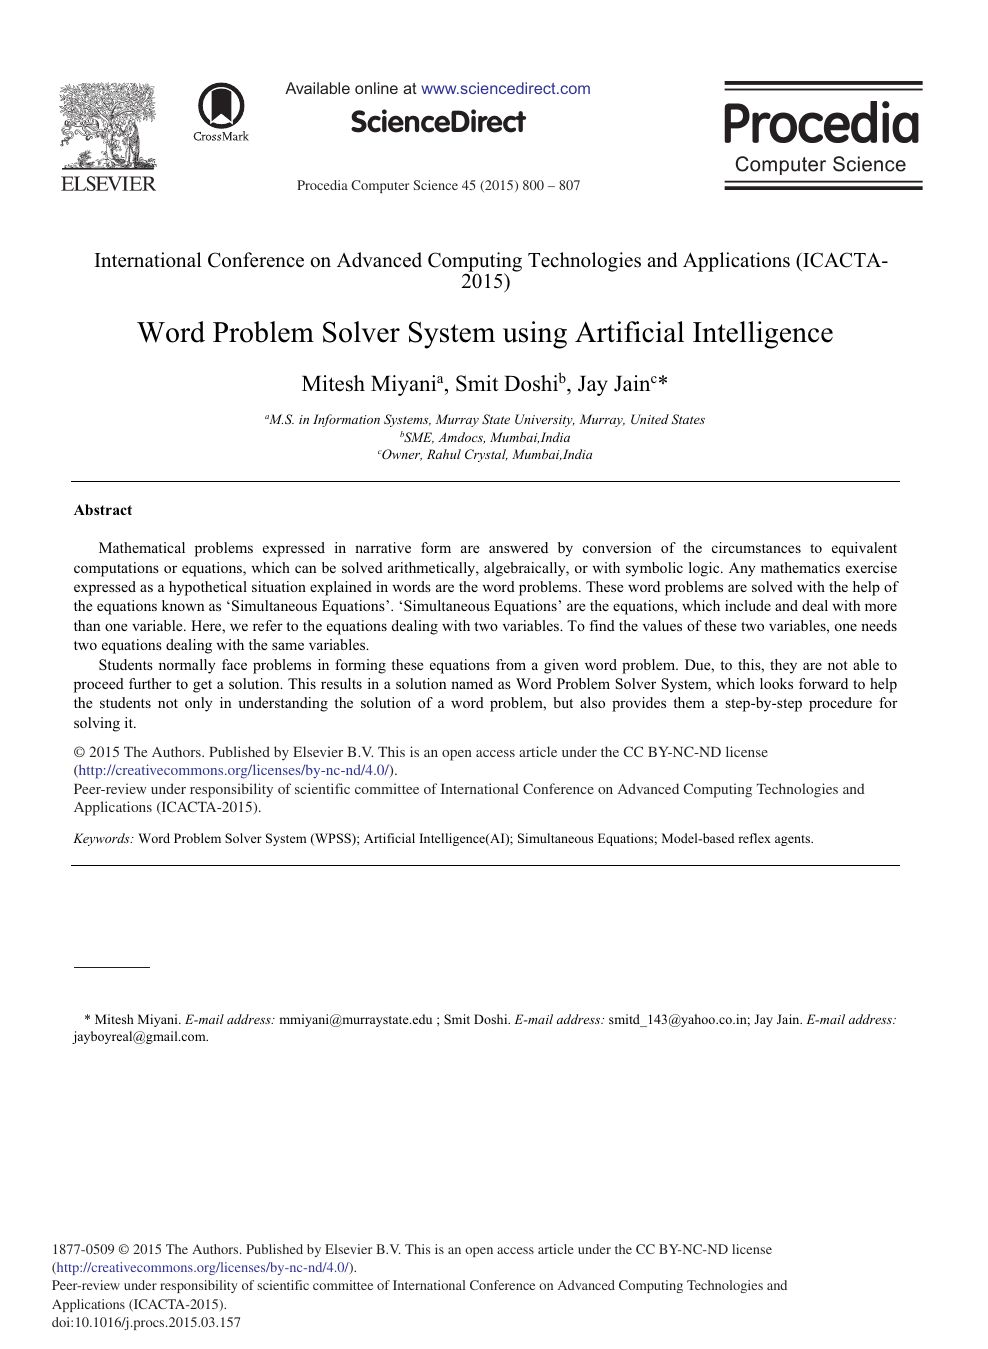 Word Problem Solver System Using Artificial Intelligence ... on